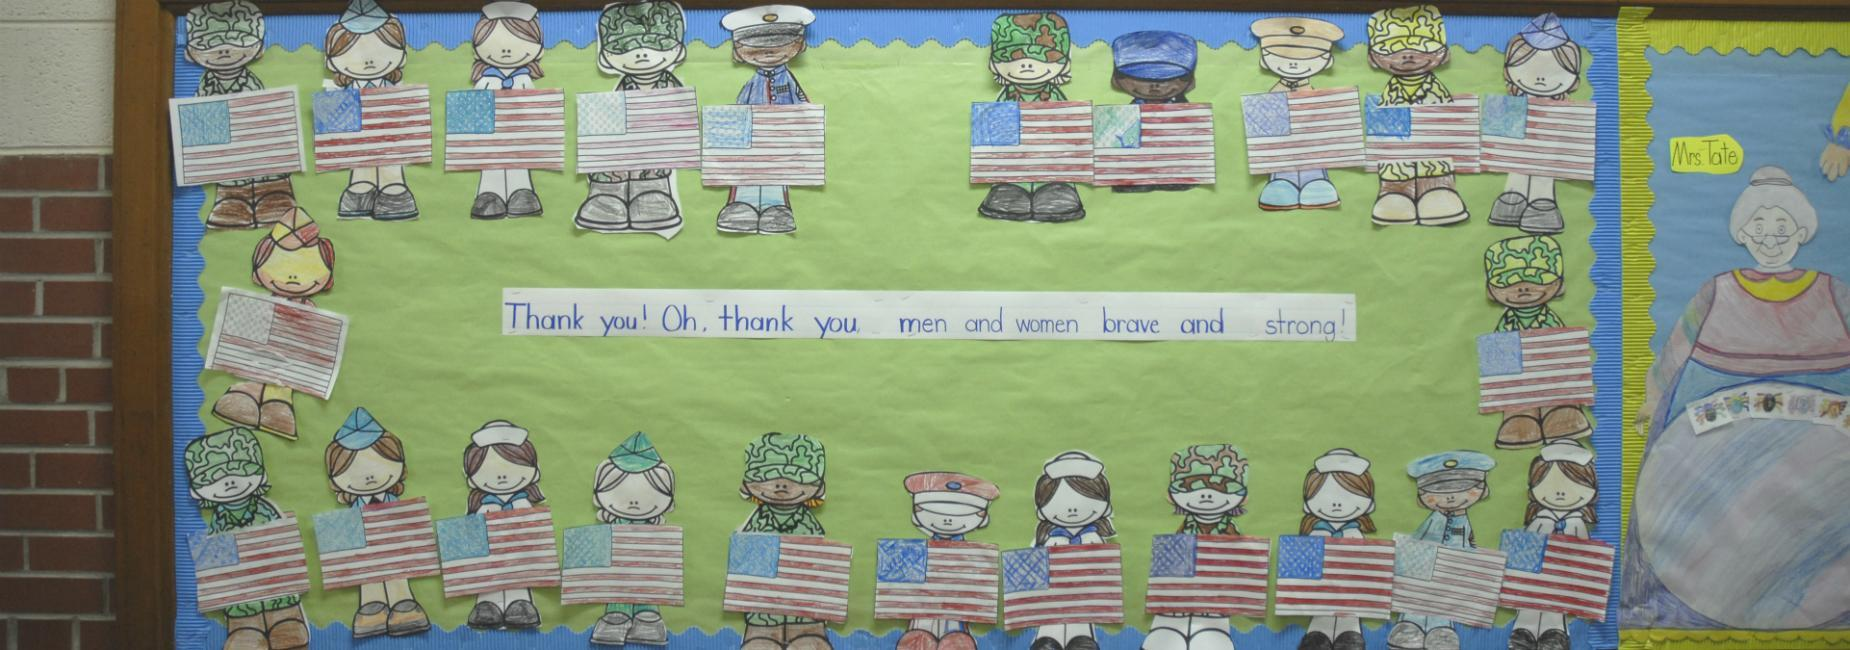 Bulletin board thanking American service men and women for being brave and strong